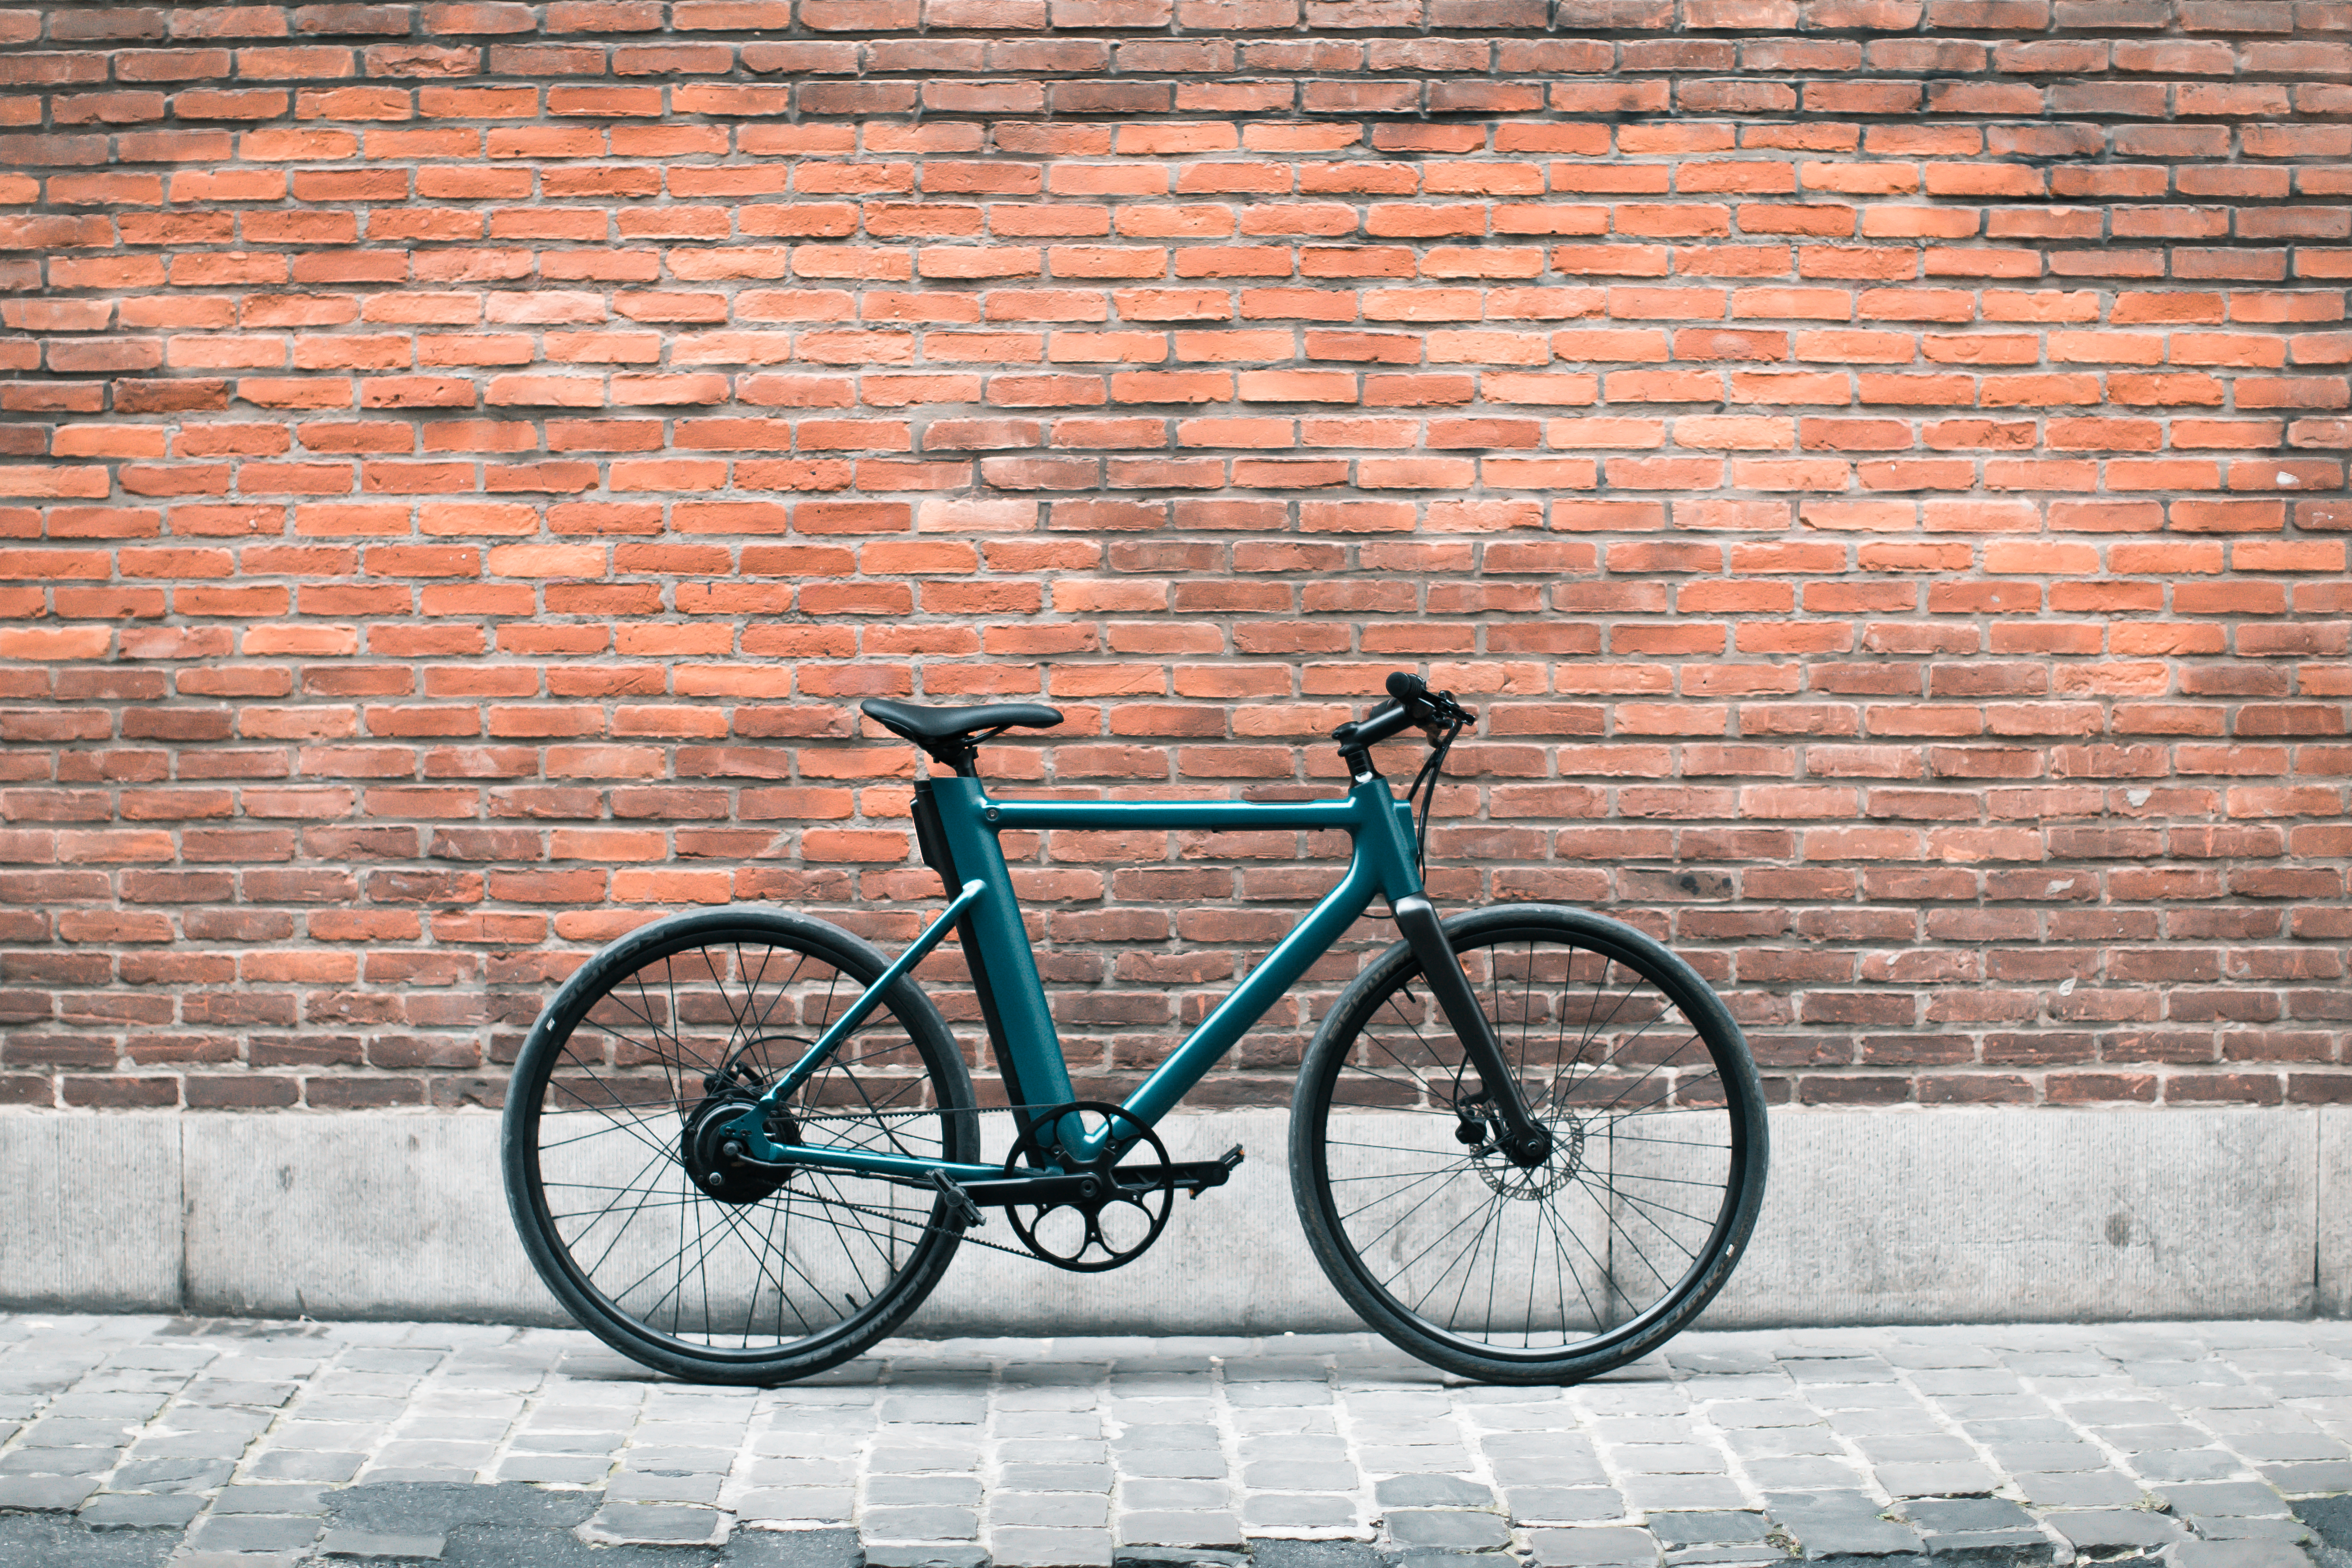 Cowboy is a new e-bike startup from founders of Take Eat Easy